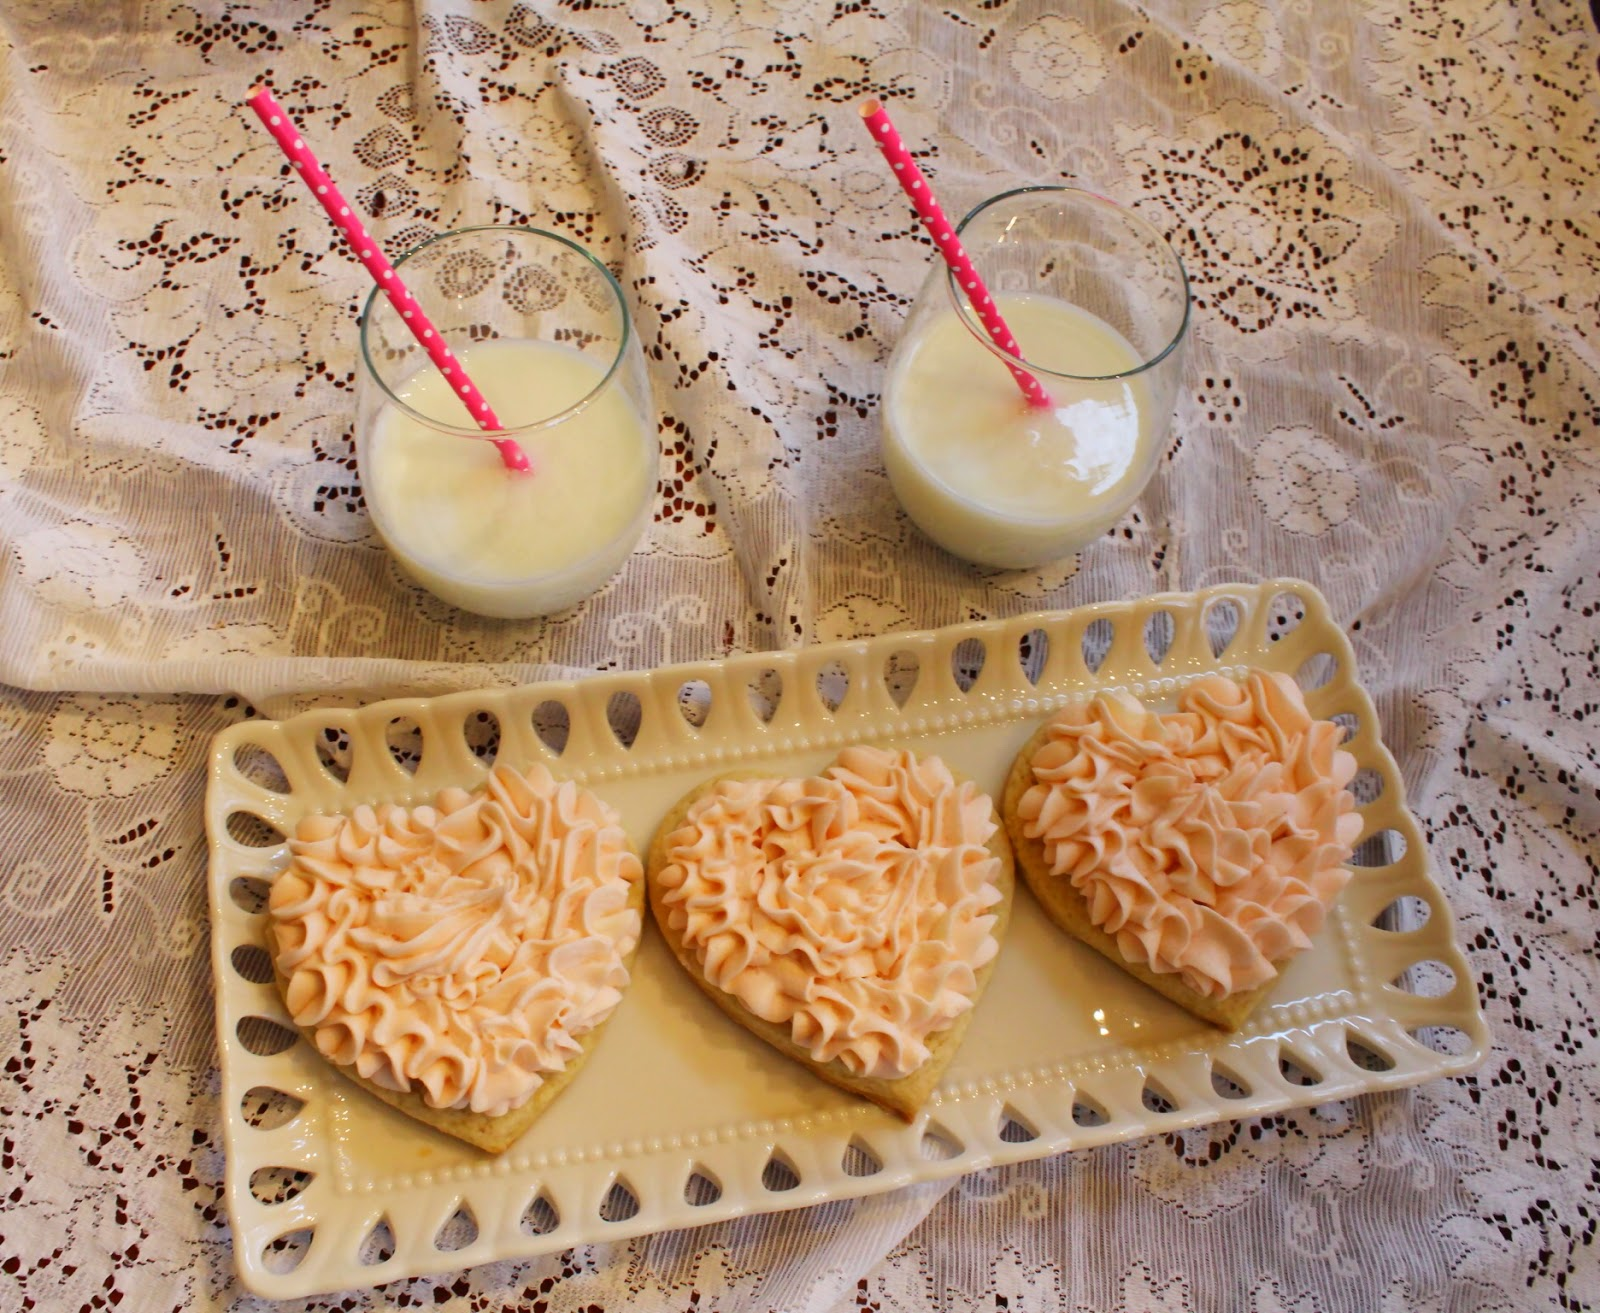 valentines day, valentines treats, cookies, food blogger, lifestyle blogger, mormon blogger, sugar cookies